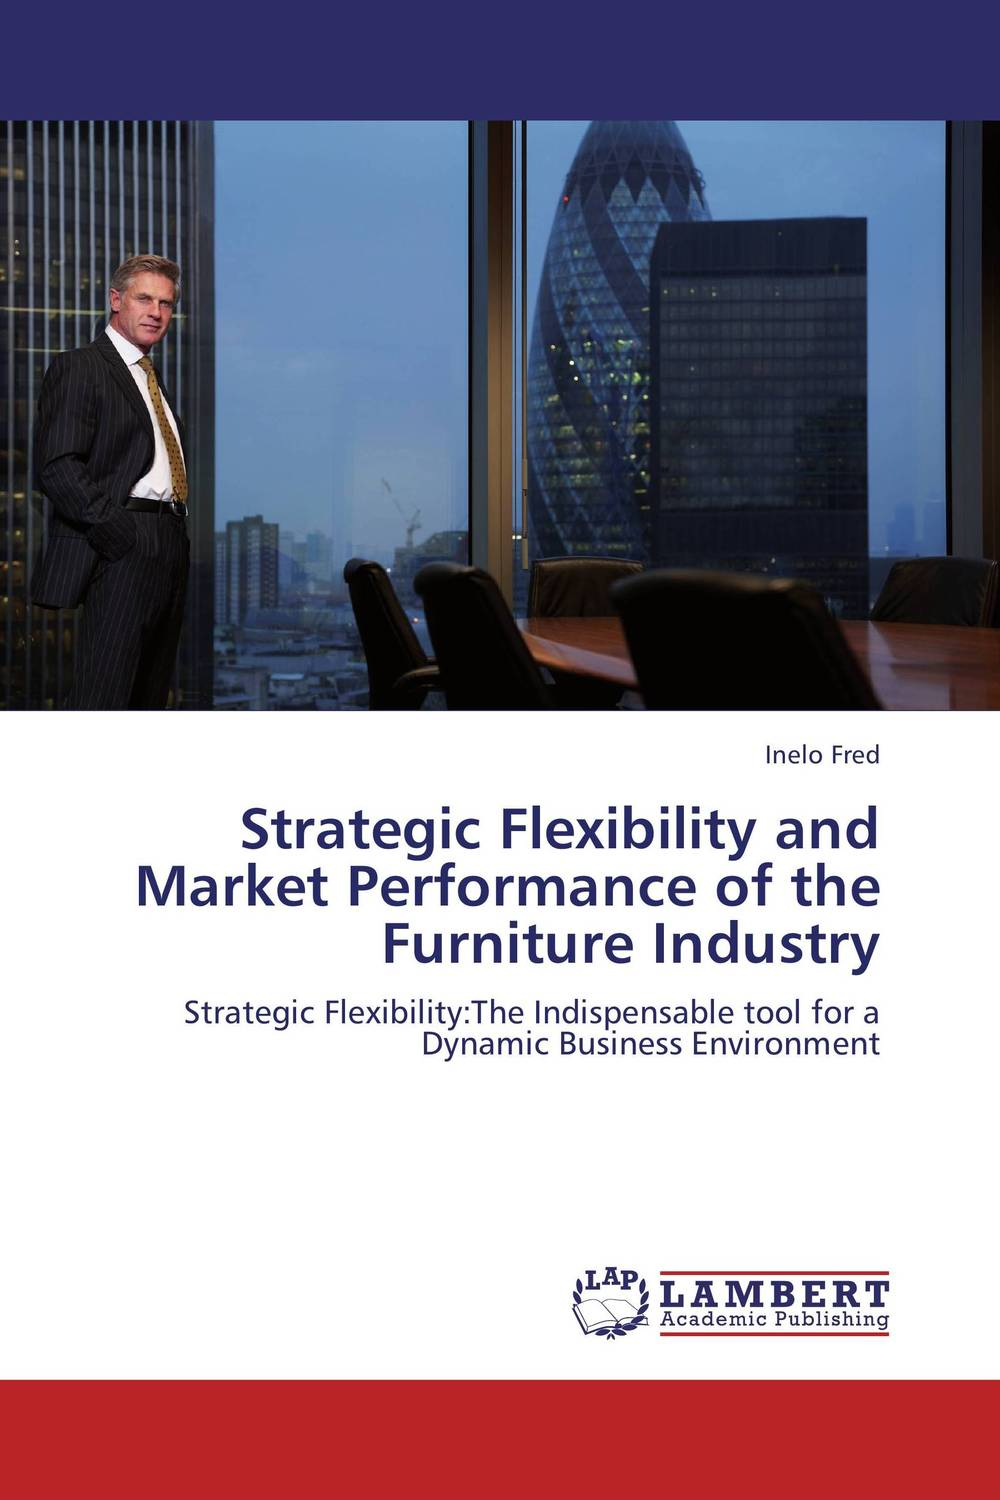 Strategic Flexibility and Market Performance of the Furniture Industry